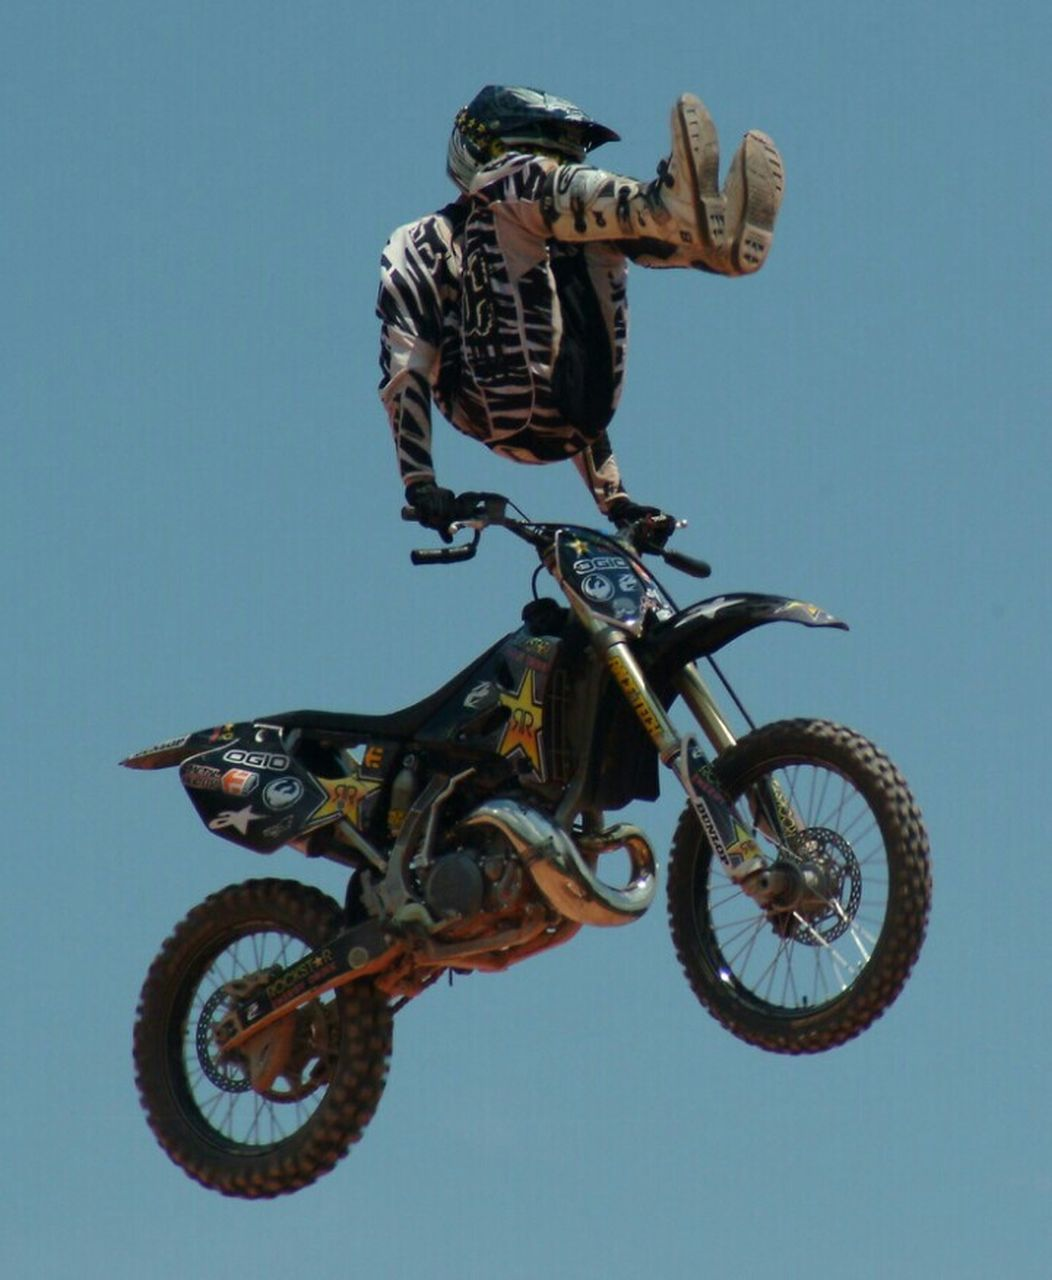 risk, stunt, riding, helmet, danger, bicycle, clear sky, full length, jumping, day, extreme sports, cycling, leisure activity, motocross, outdoors, sport, mid-air, one person, men, adventure, motorcycle, sports helmet, bmx cycling, real people, low angle view, motion, activity, sky, headwear, lifestyles, biker, young adult, stunt person, people